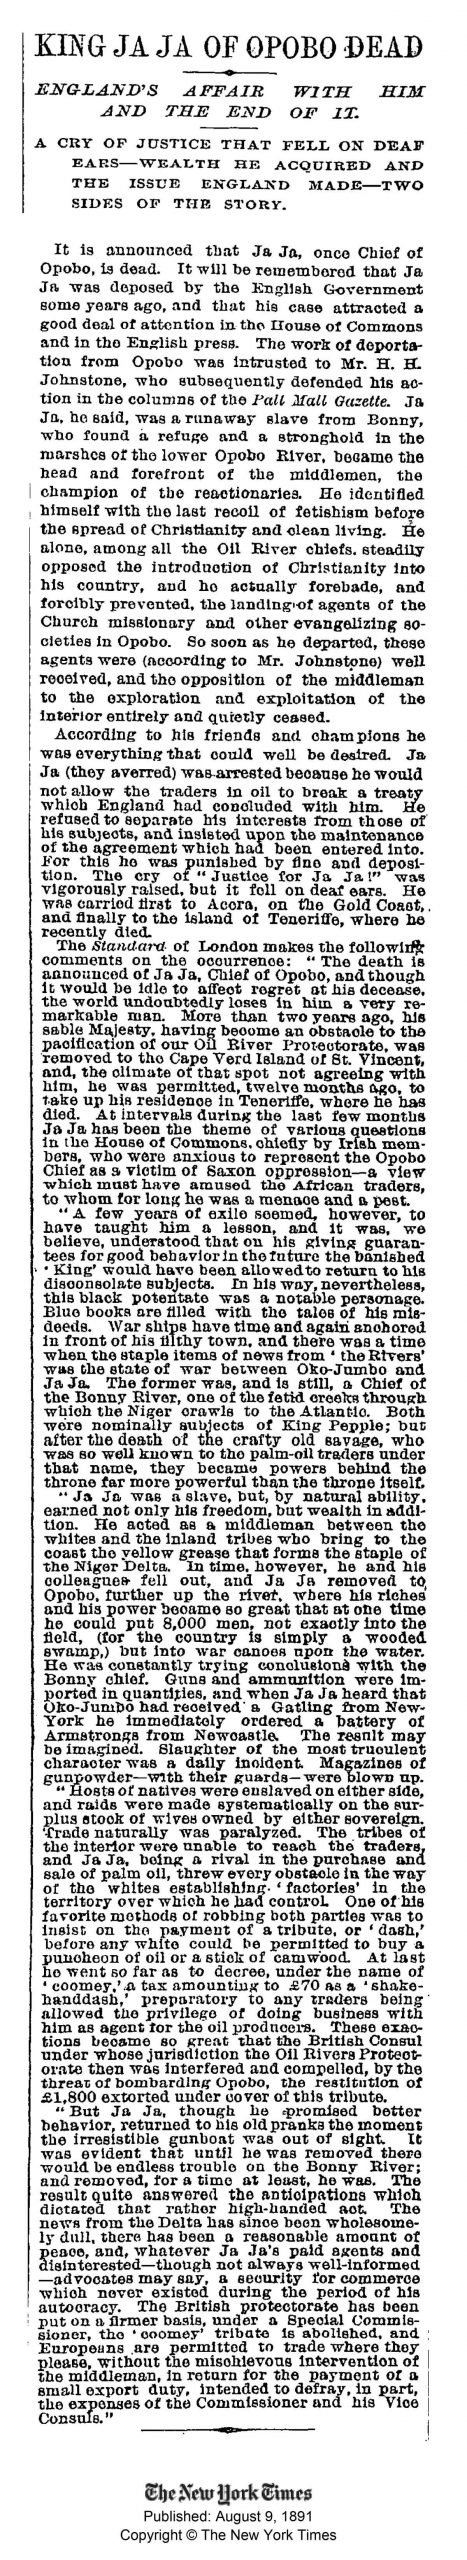 King JaJa of Opobo death annoucement New York Times 8 August 1891